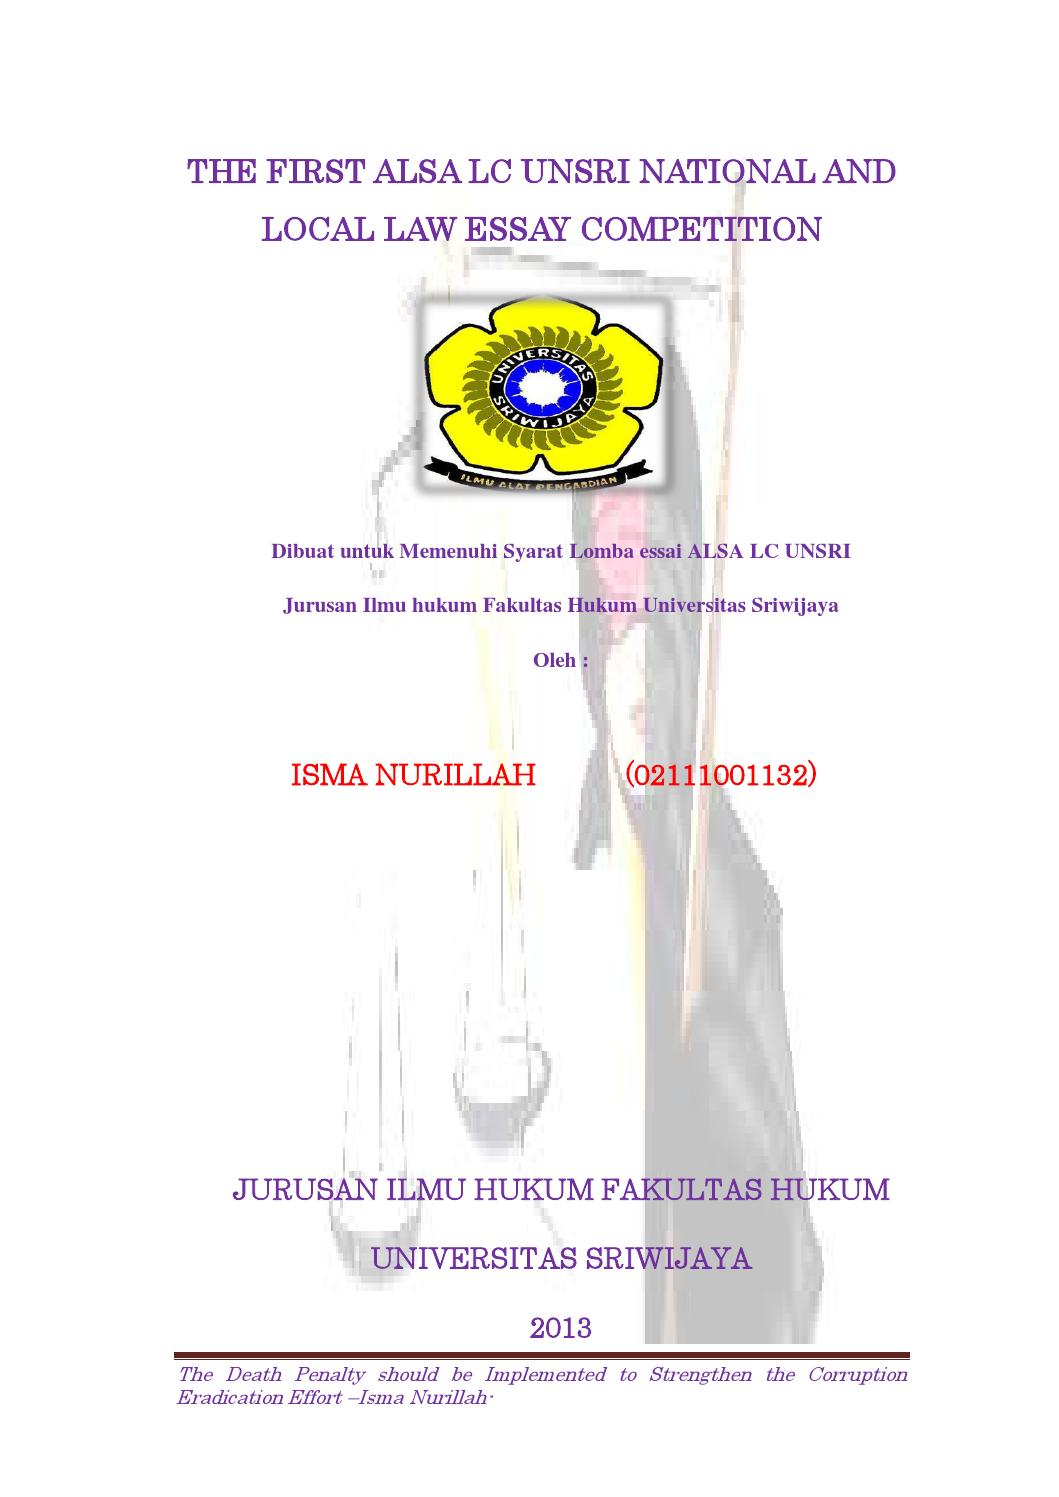 st winner alsa local law essay competition by alsa lc unsri 1st winner alsa local law essay competition 2013 by alsa lc unsri issuu